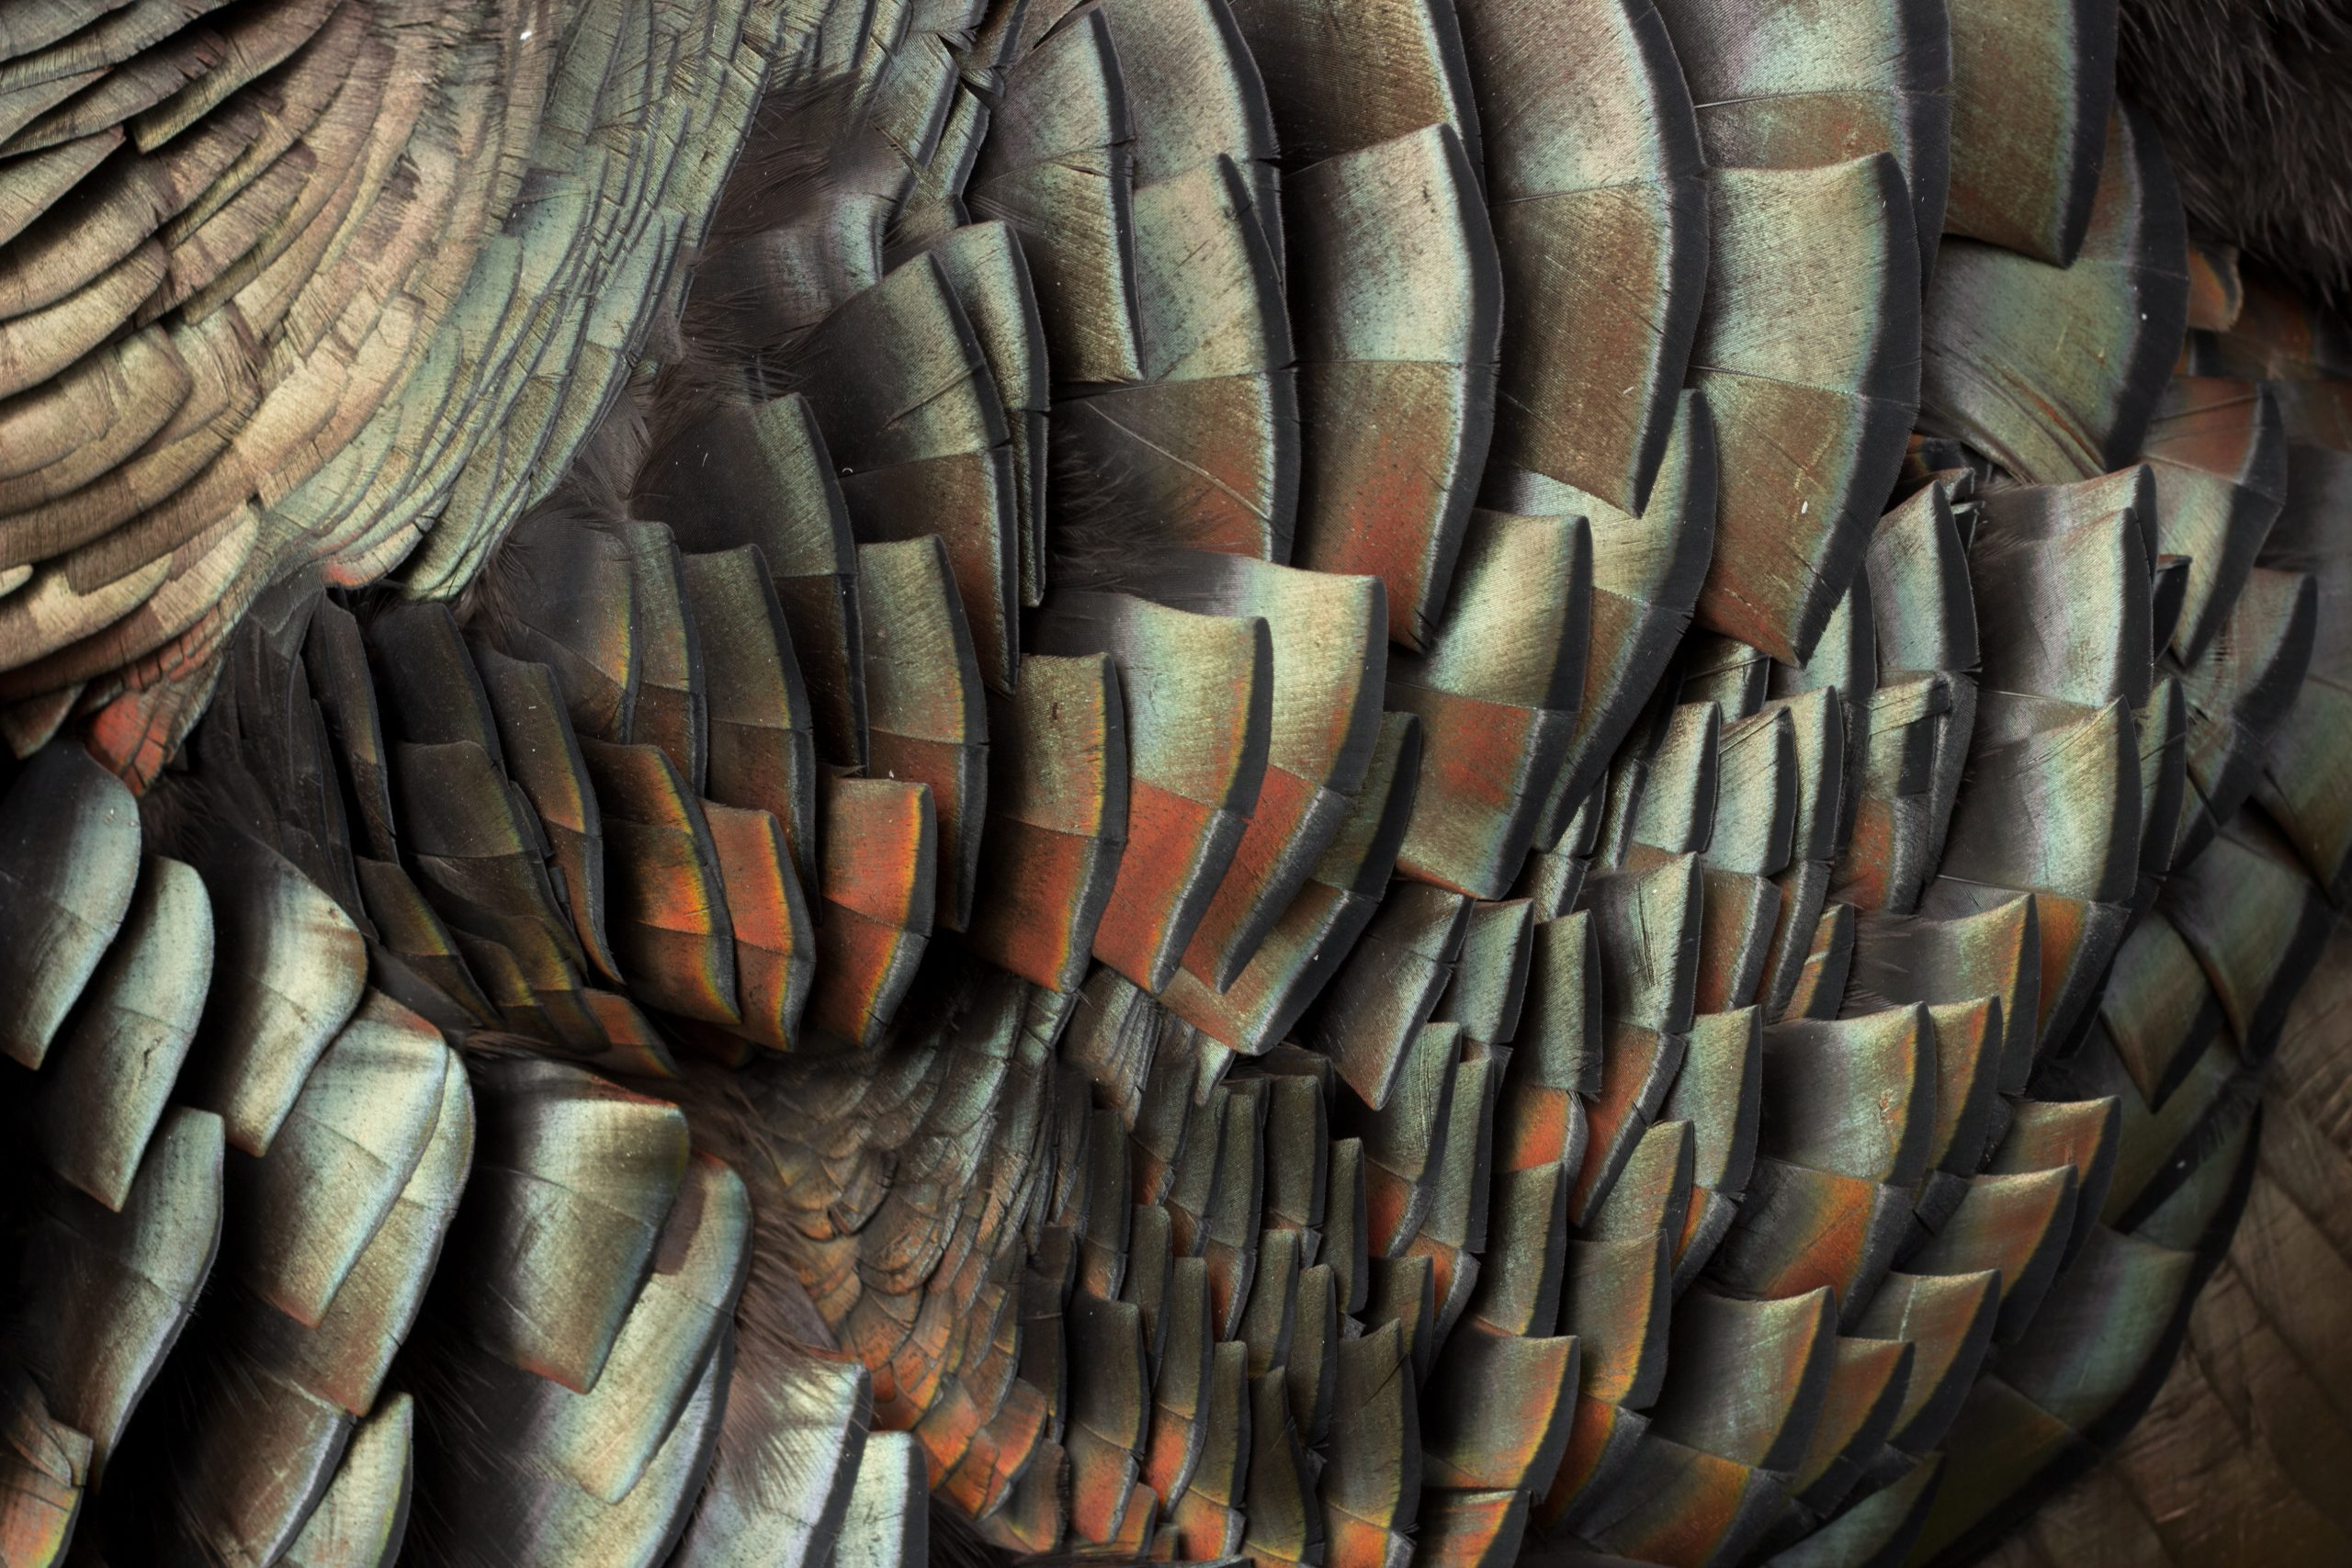 Turkey feathers displaying colors. Photo: nbiebach/shutterstock.com